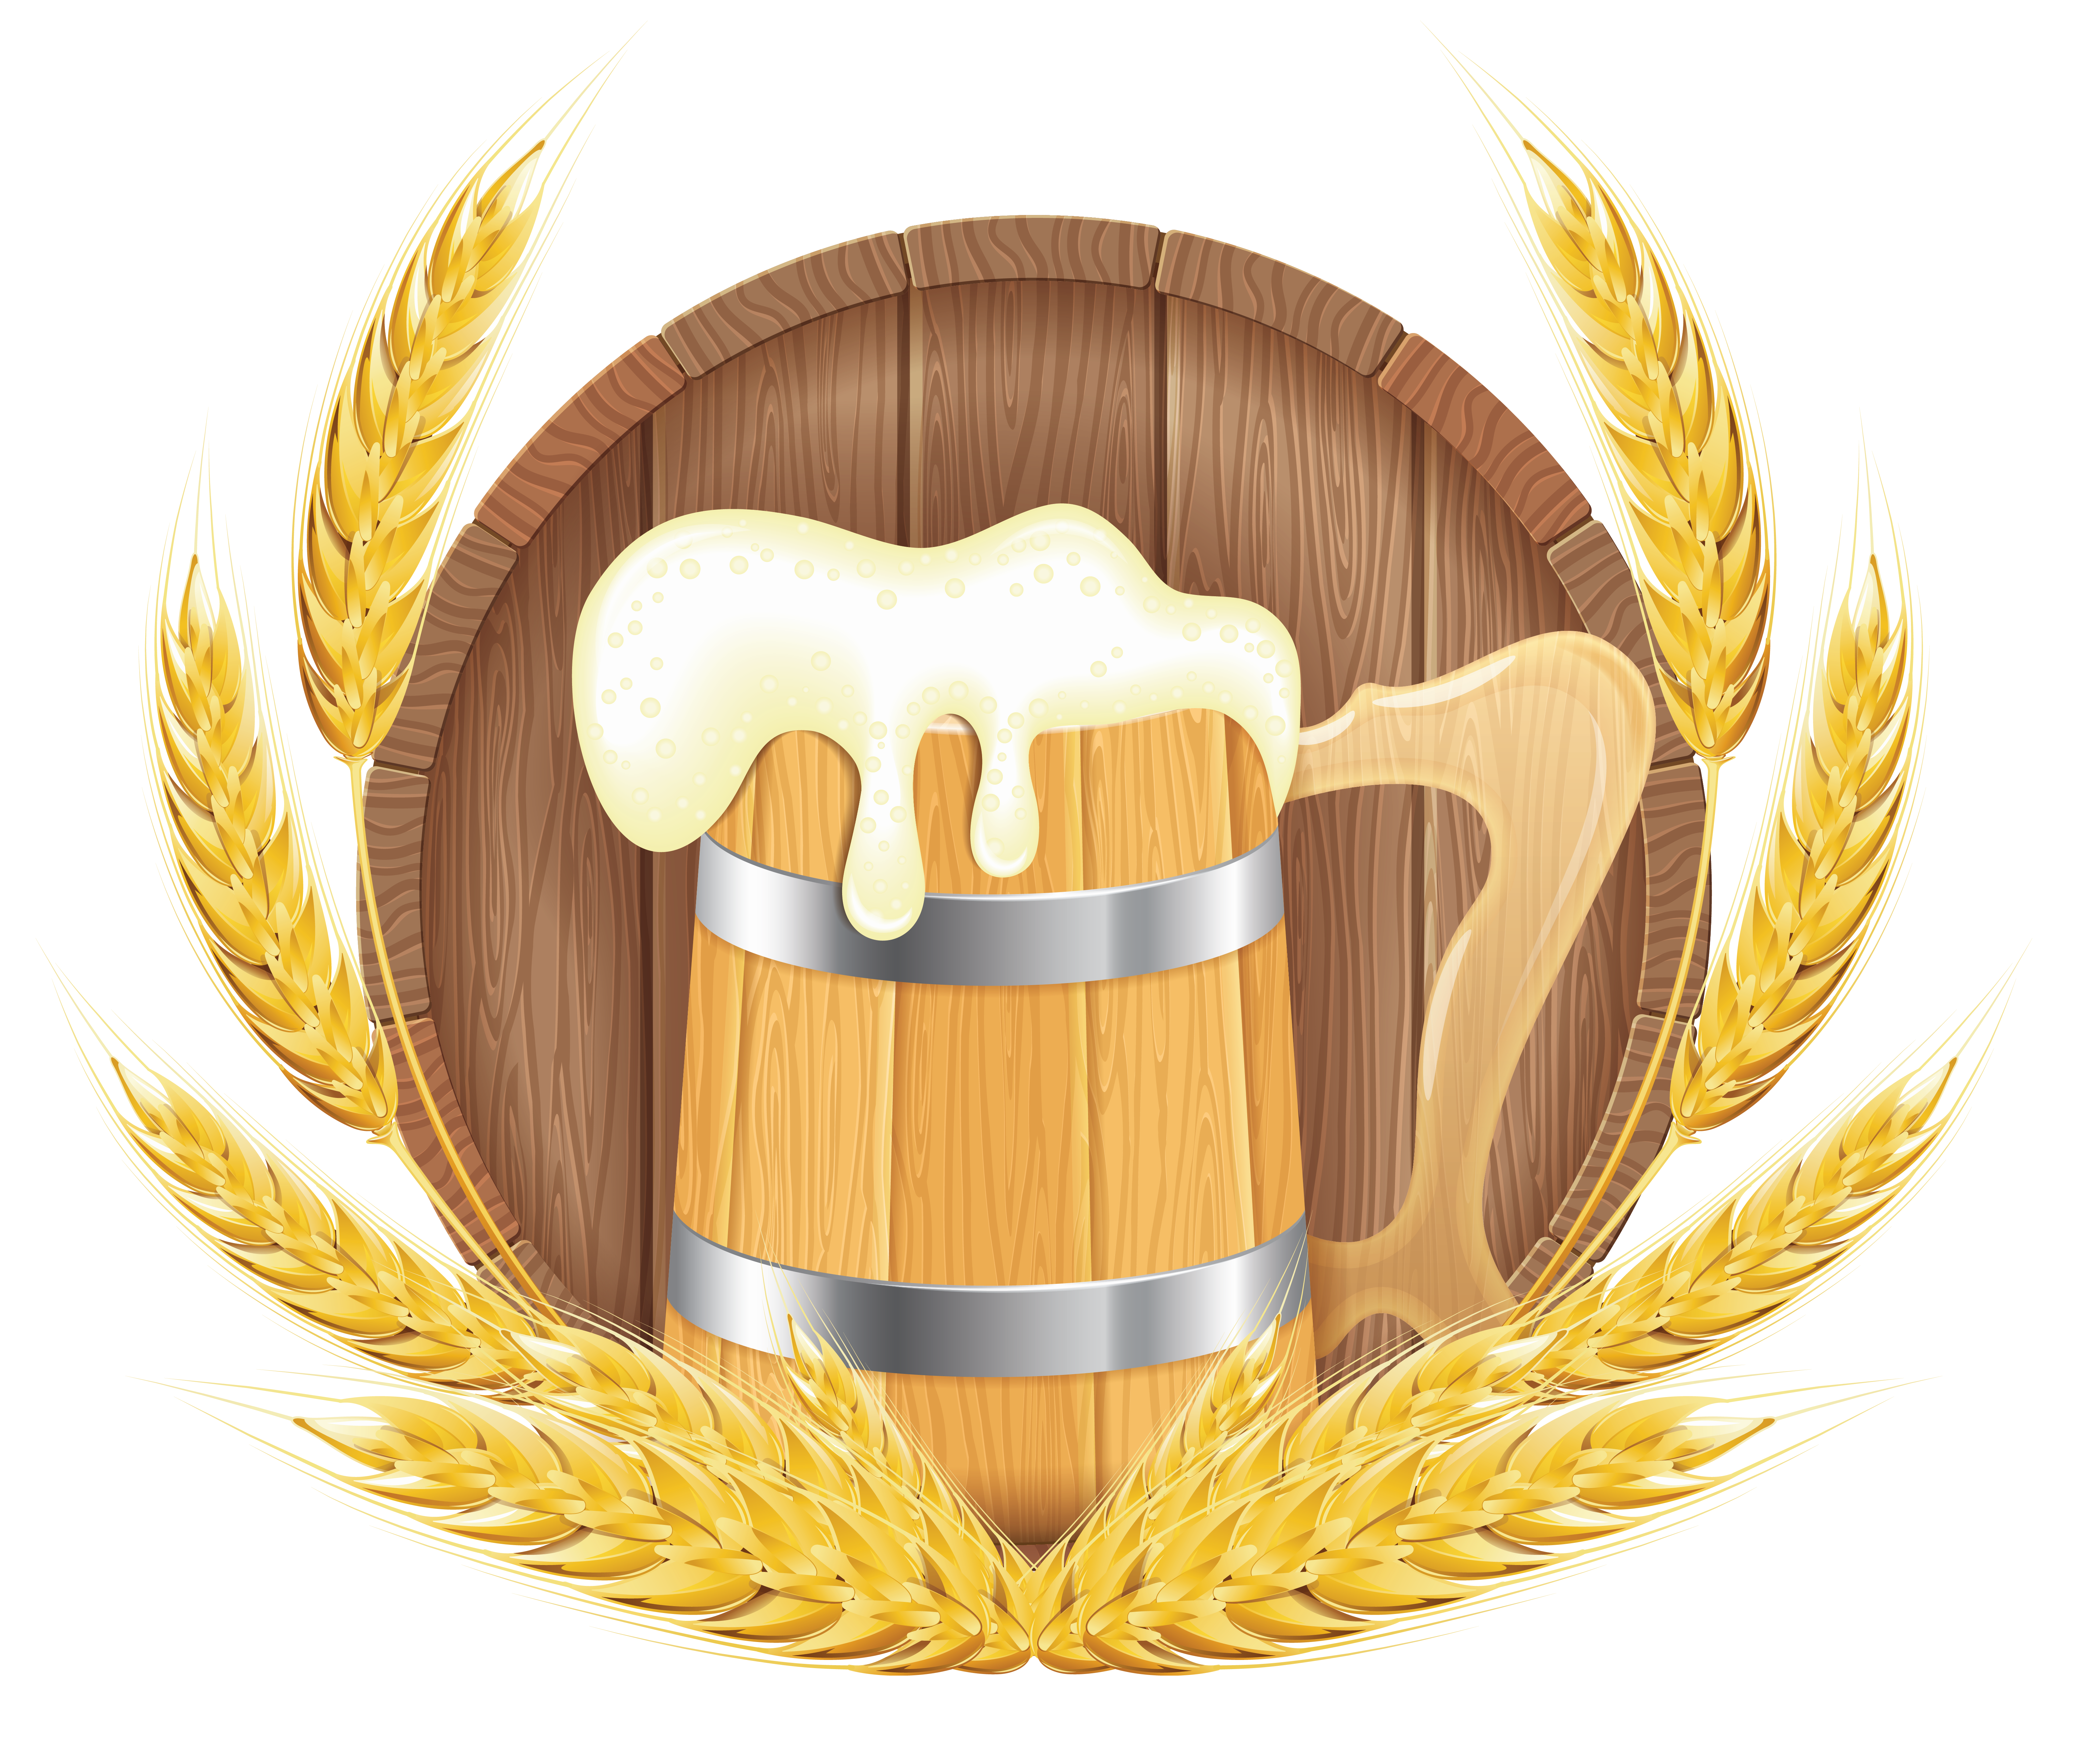 Wheat beer clipart #14